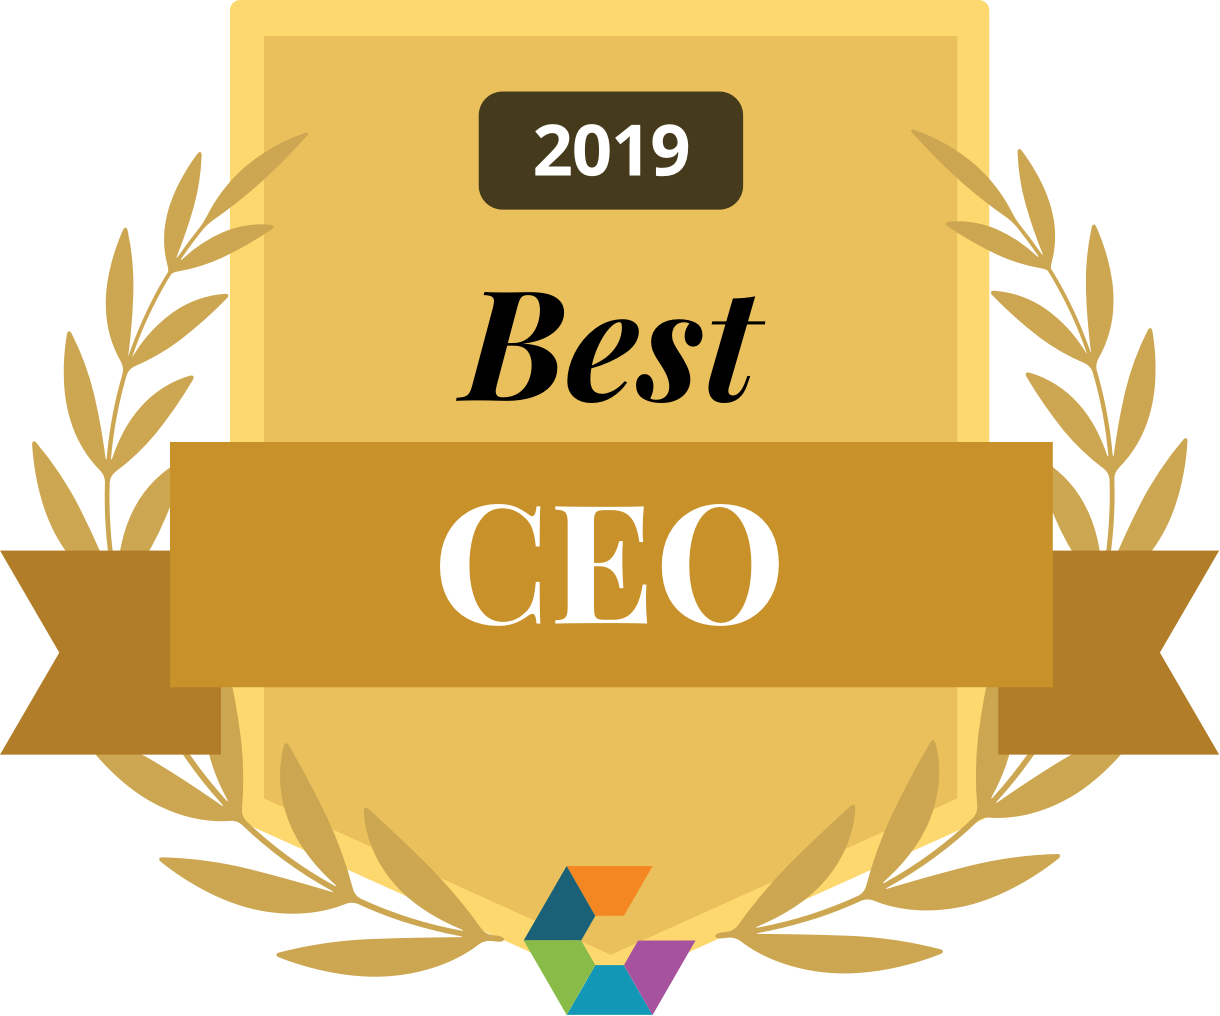 best-ceo-2019-gold-large